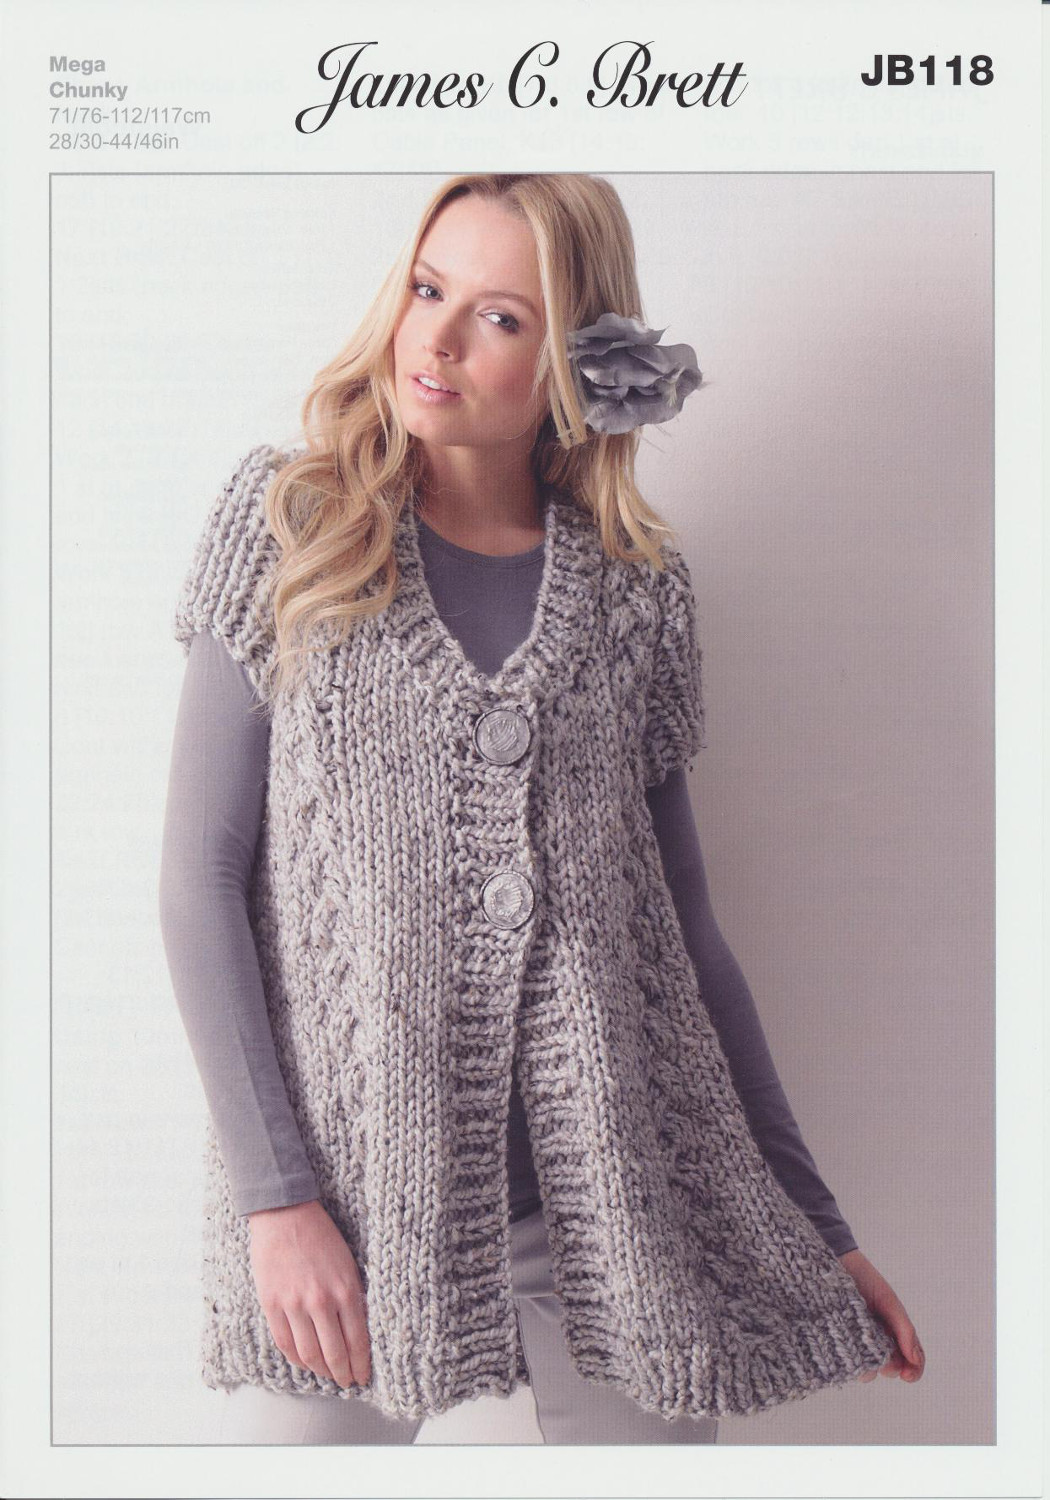 Mega chunky knitting pattern womens thick cable knit waistcoat please look at images below for the chart showing measurements yarn and materials requirement to make this garment bankloansurffo Gallery